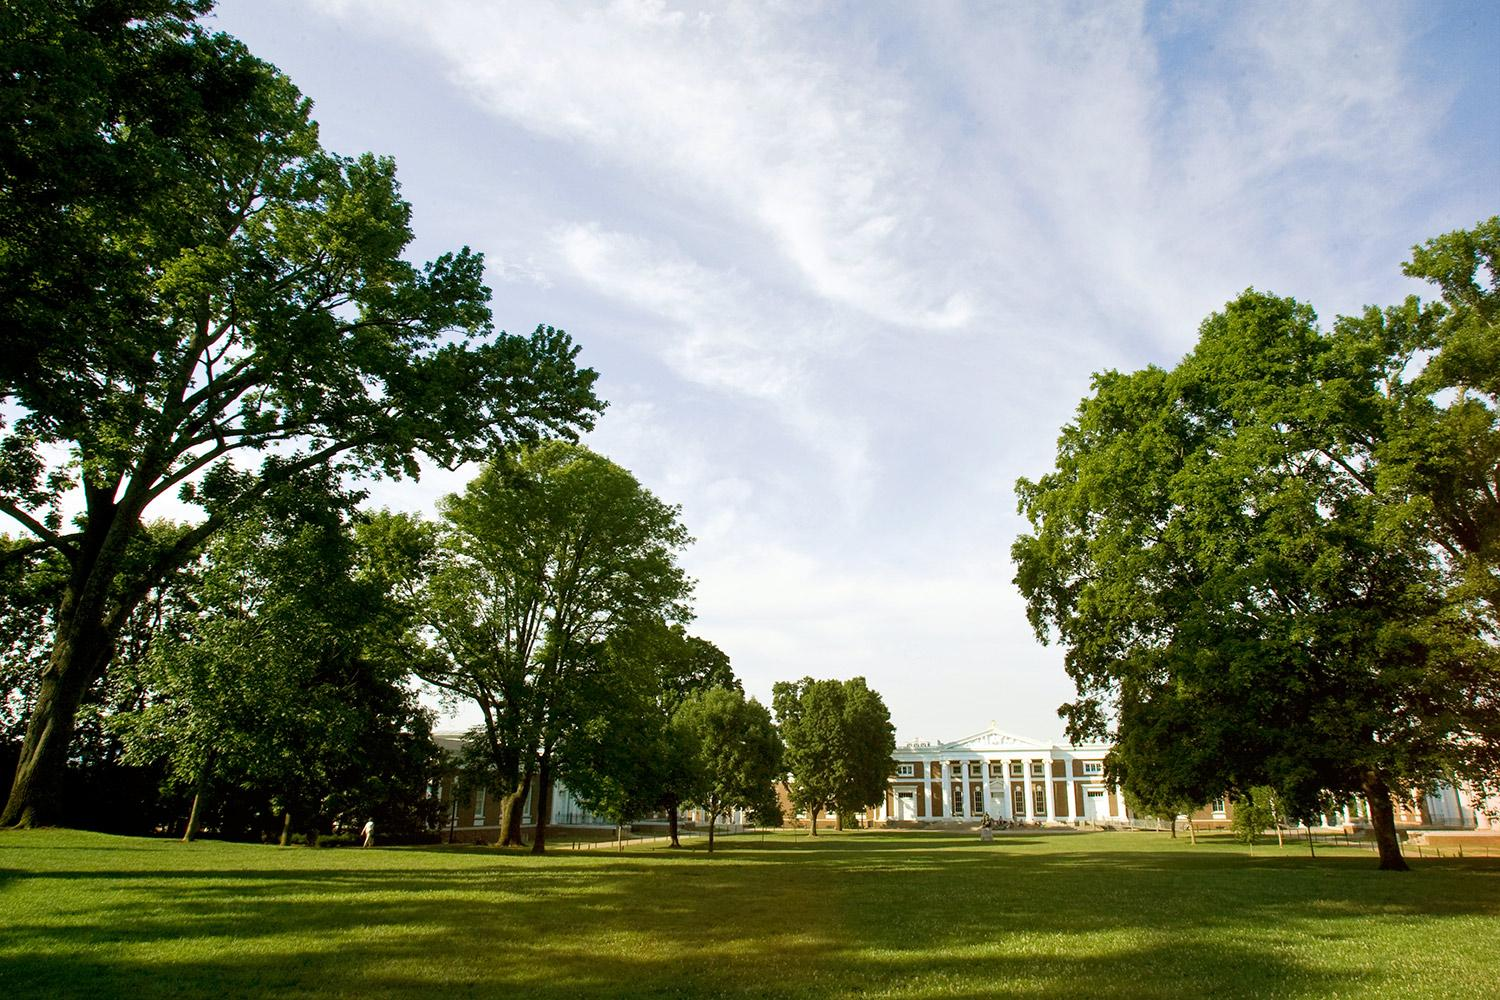 UVA's Lawn (Photo by Jane Haley)